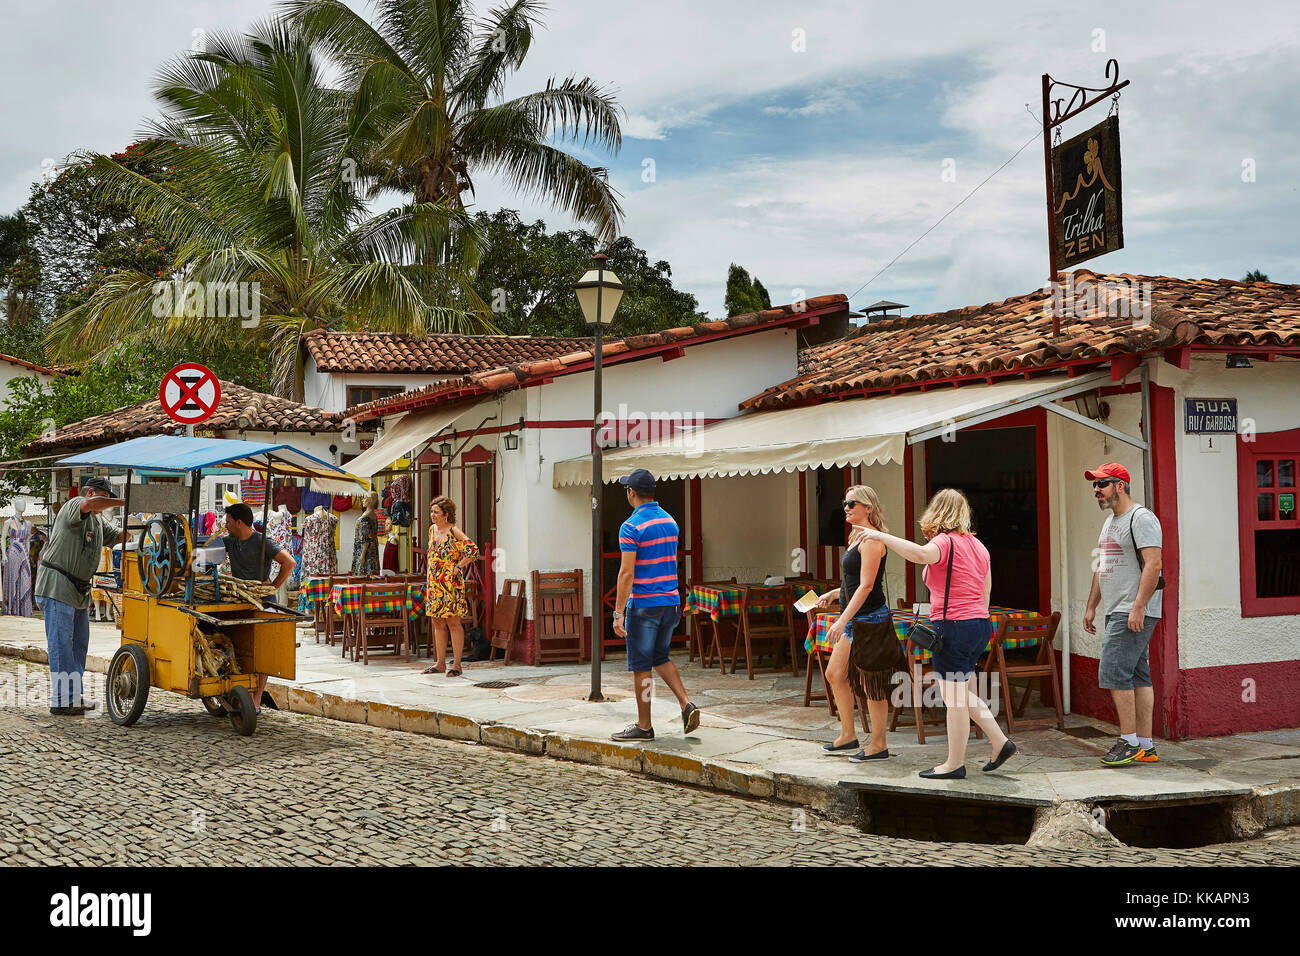 Colonial architecture in the old town, Pirenopolis, a town located in the Brazilian state of Goias, Brazil, South - Stock Image